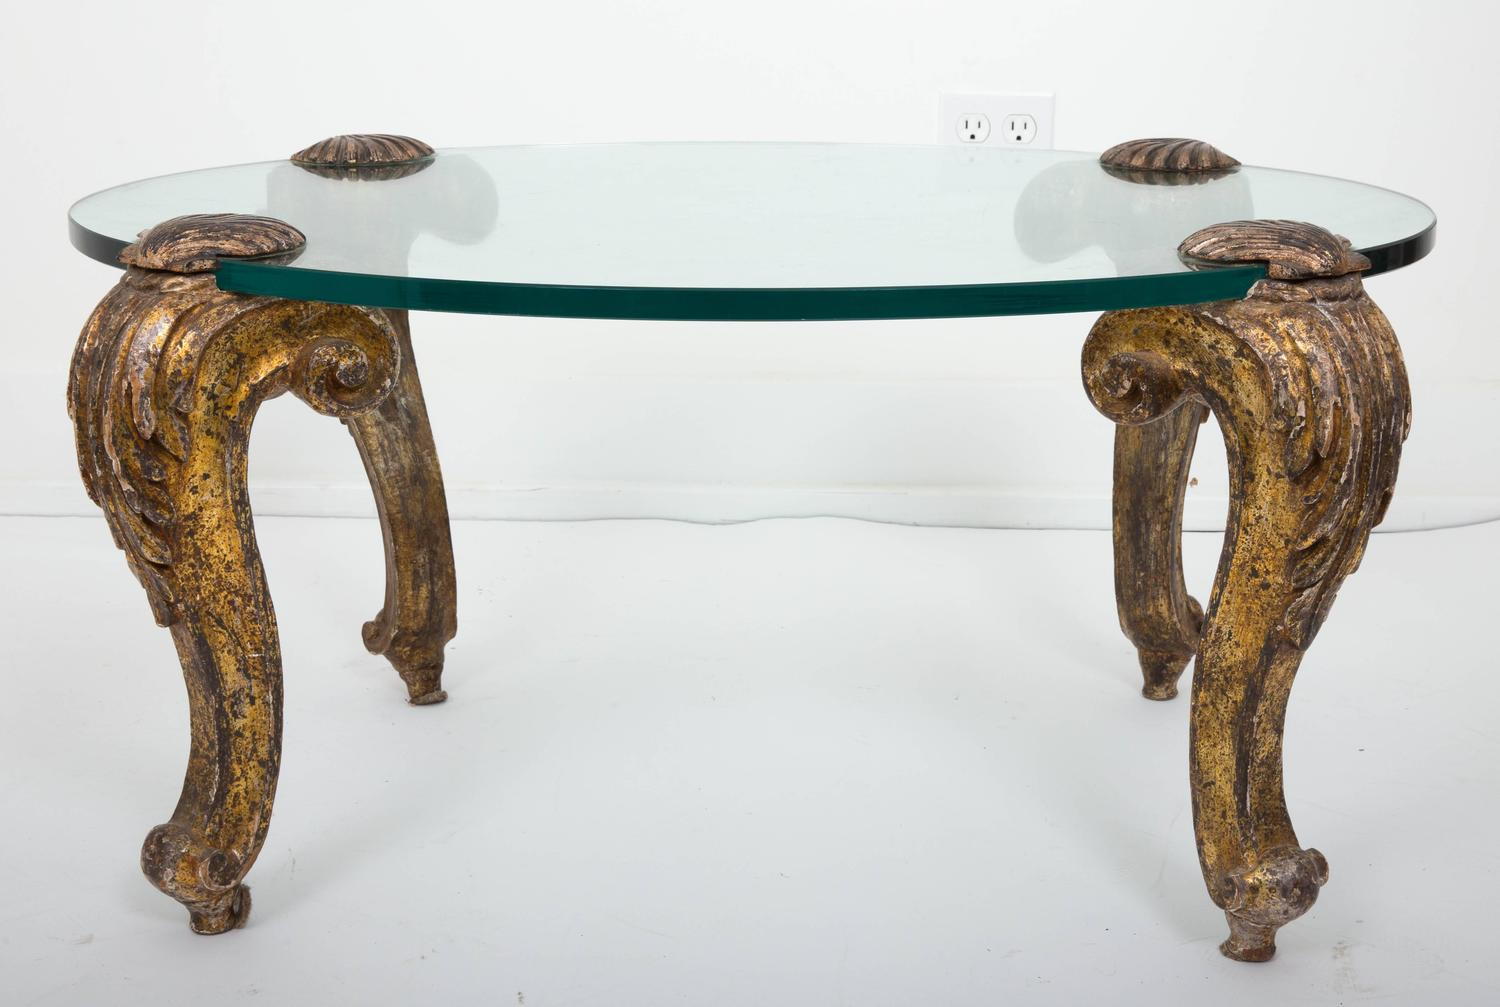 Italian grotto style coffee table with glass top for sale at 1stdibs Tuscan style coffee table